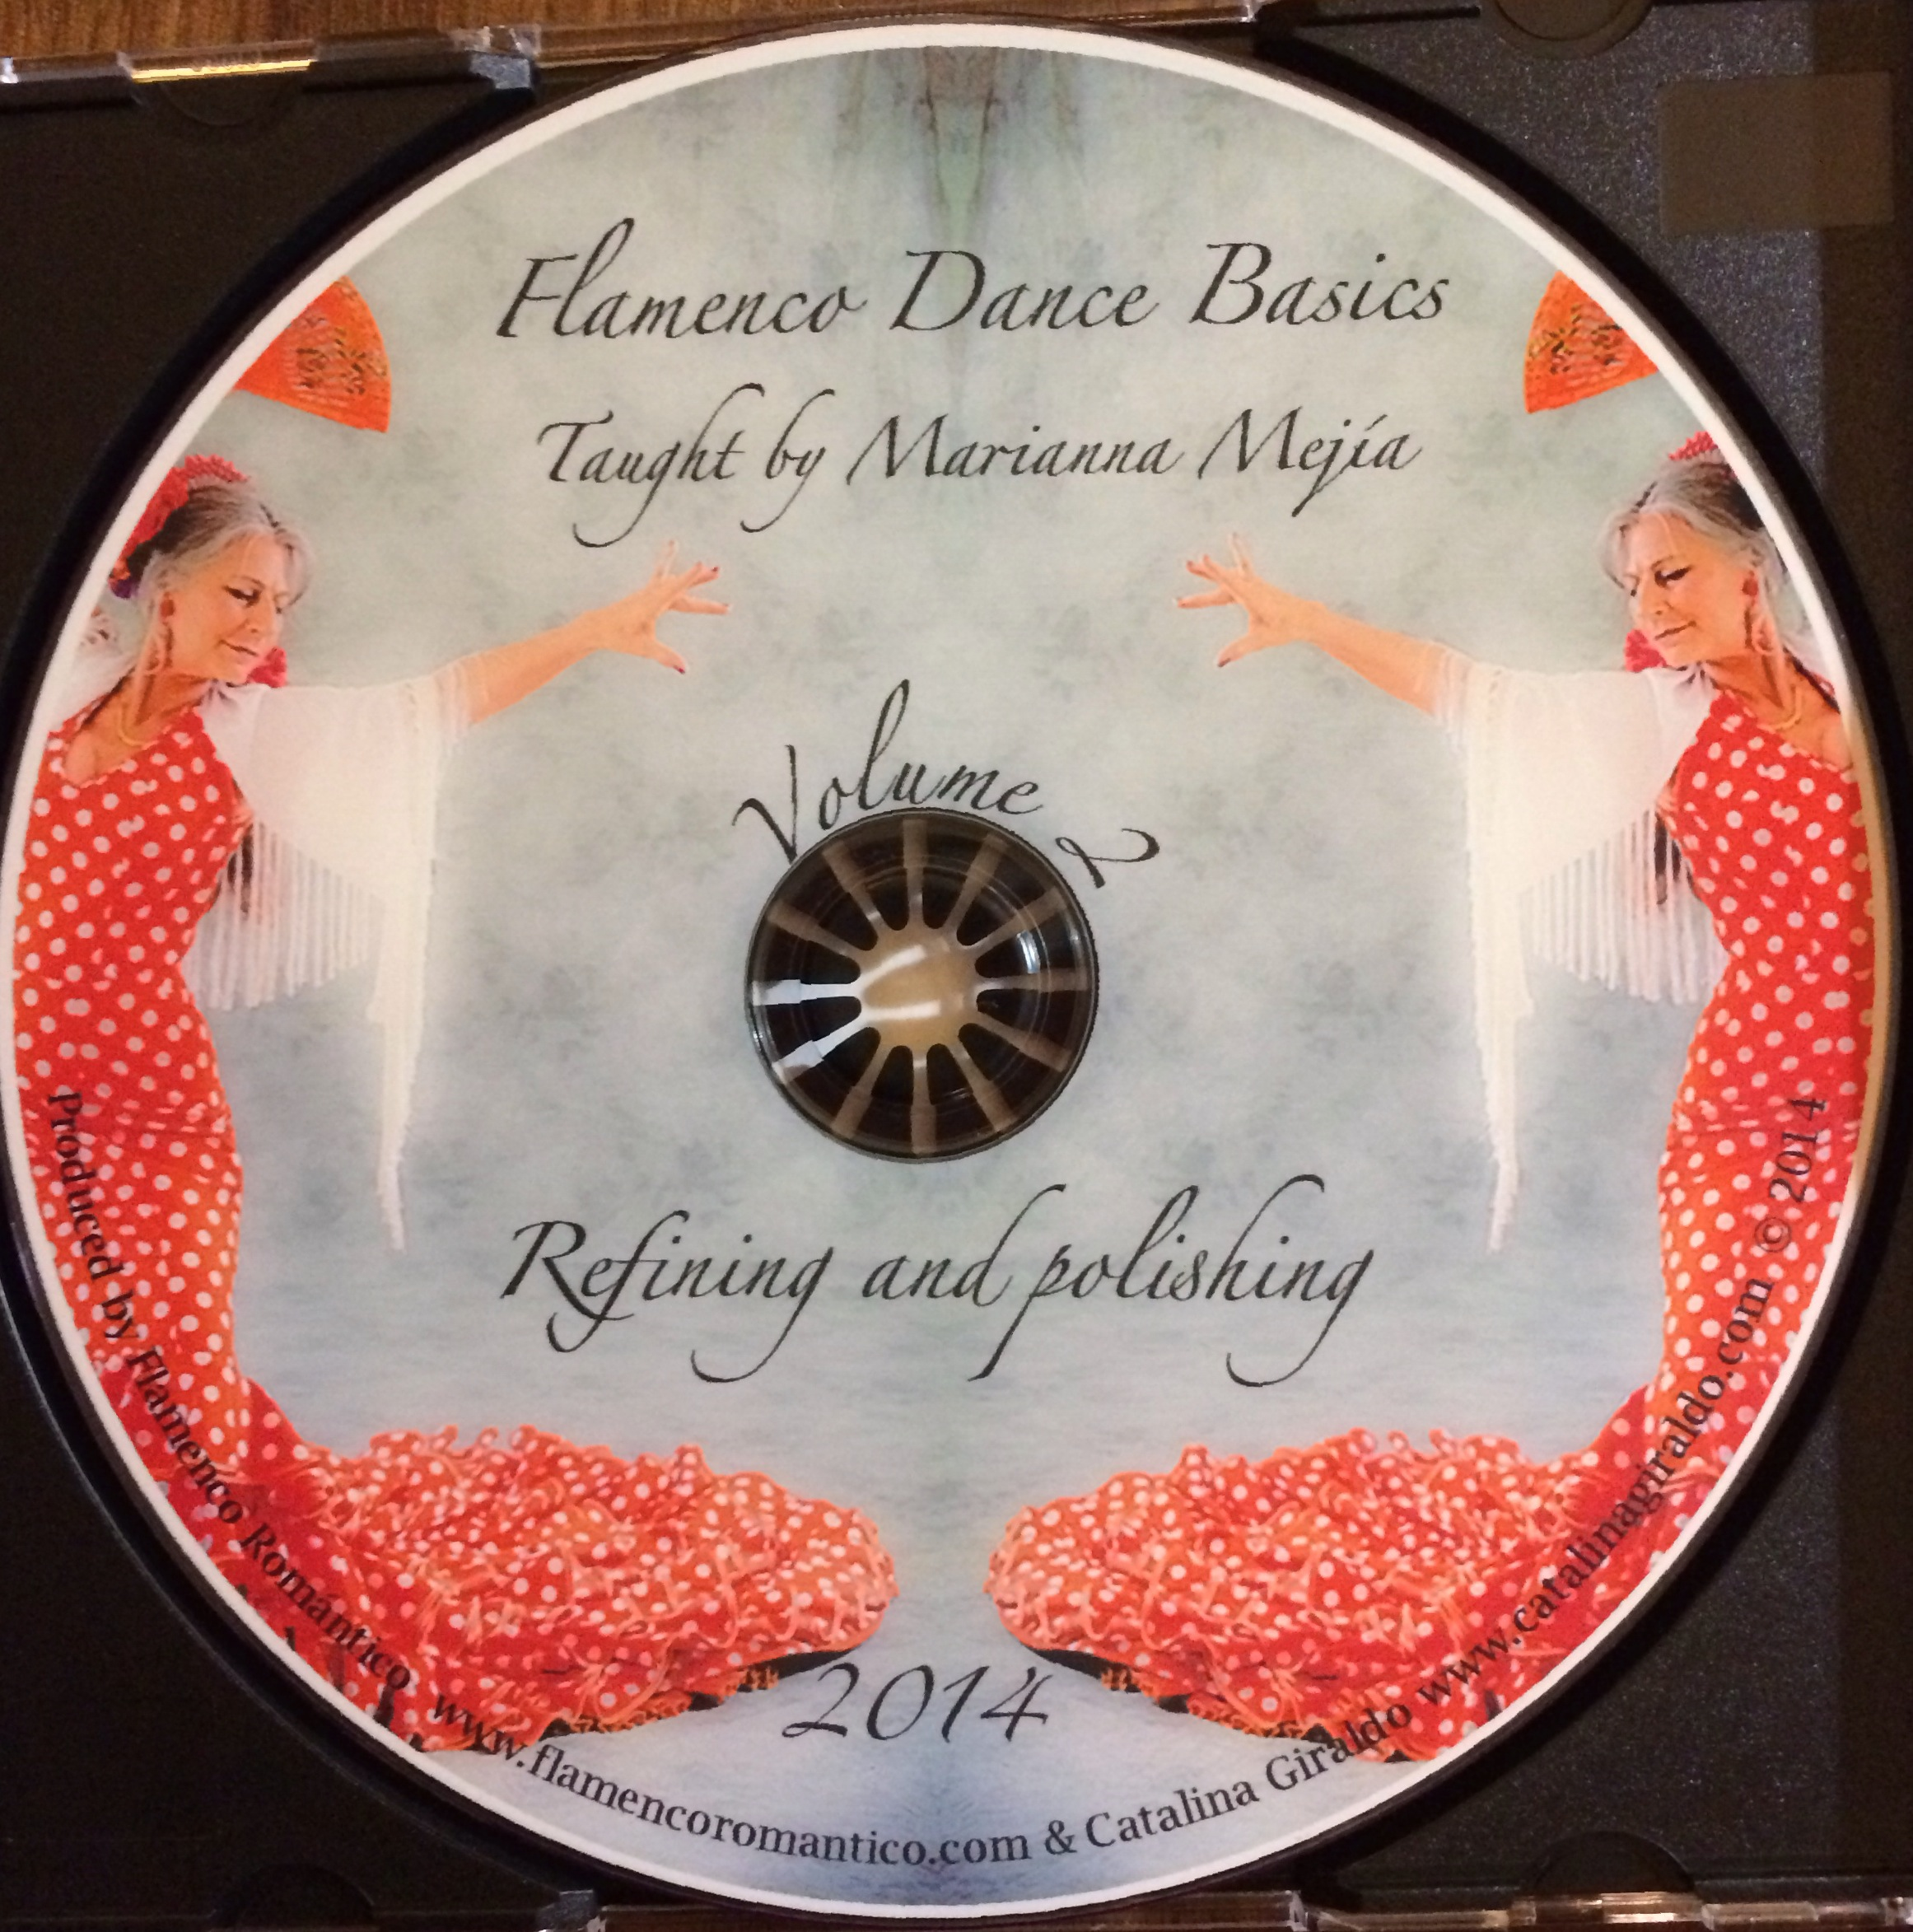 Flamenco Dance Basics Vol 2, DVD Label